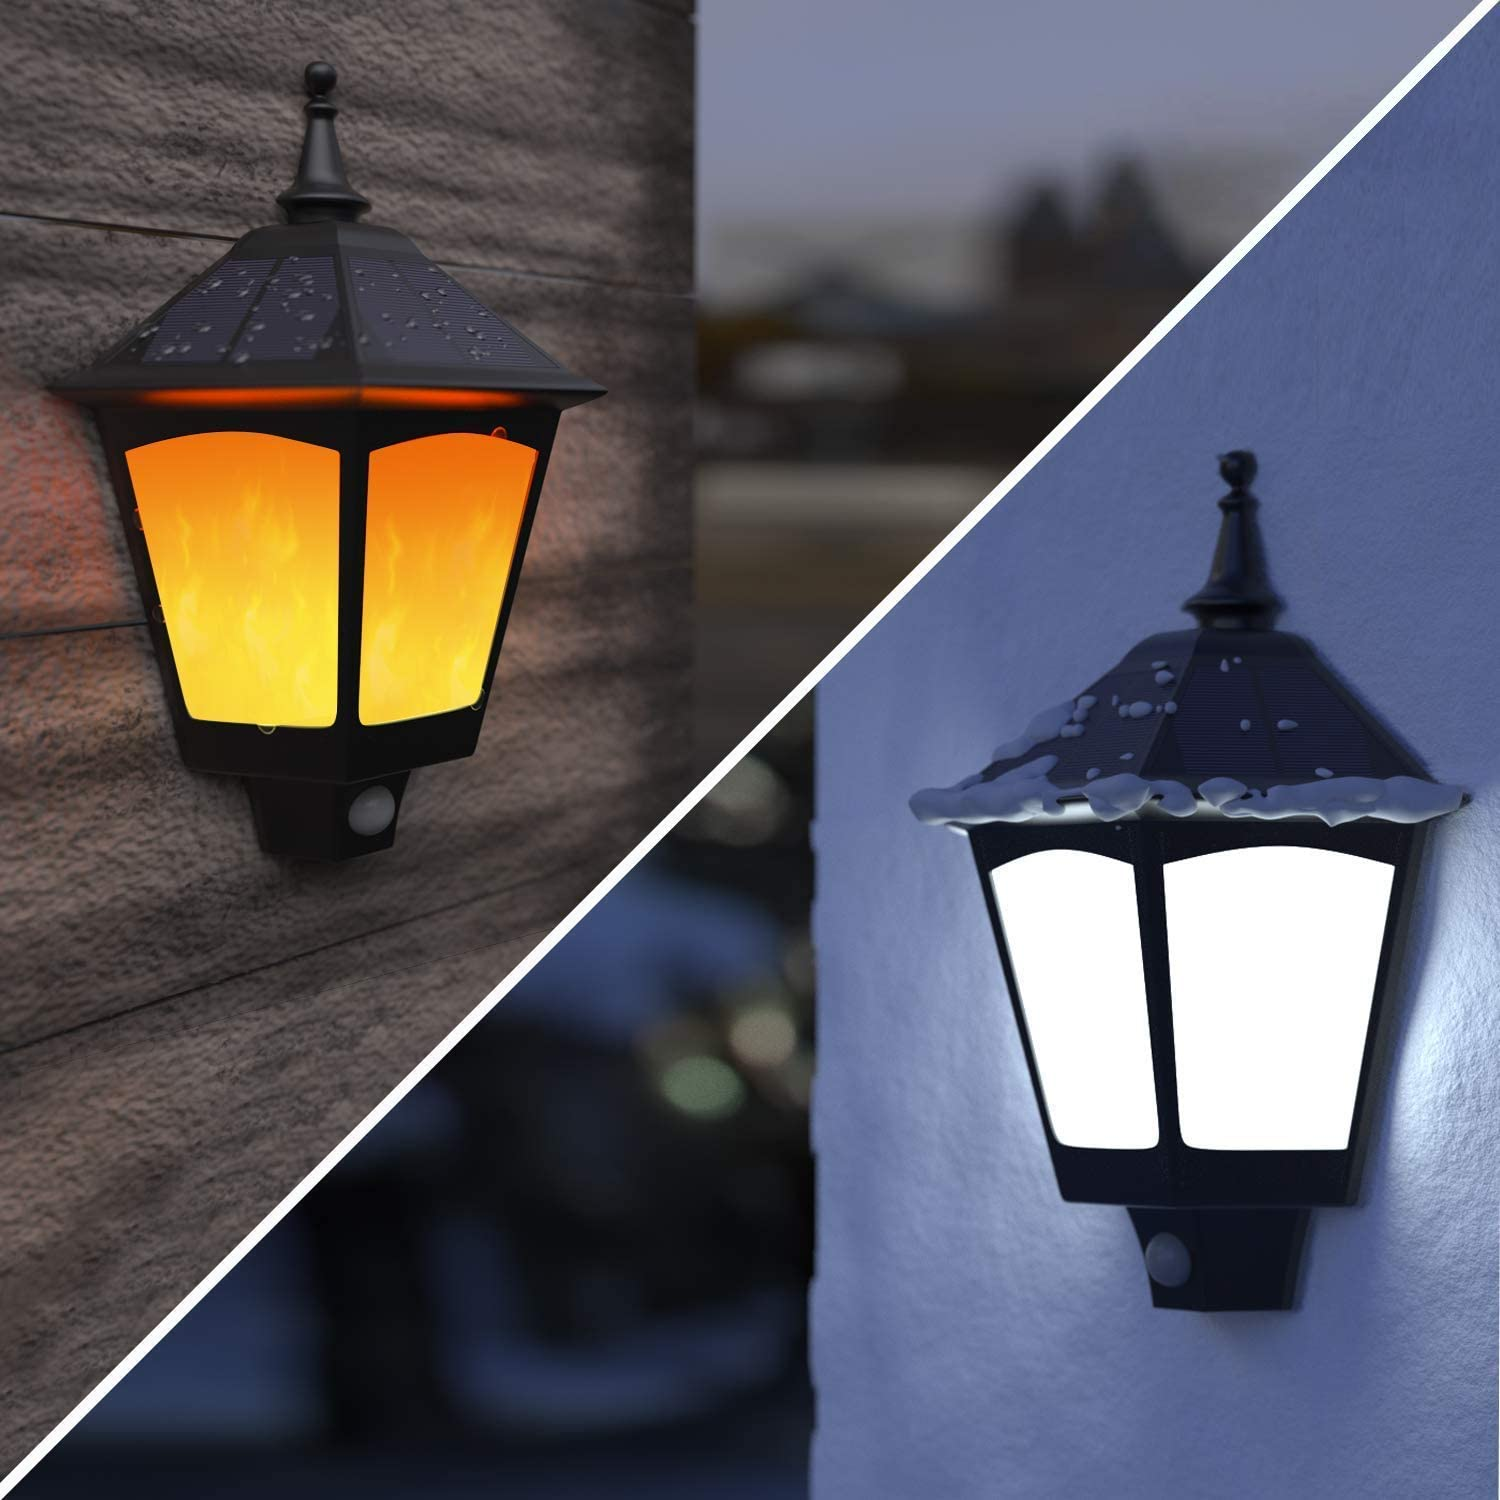 Amazon Com Solar Lights Outdoor Decorative Aloveco 2 In 1 Solar Wall Sconce Solar Torch Lights With Flickering Flame 87 Leds Solar Motion Case Of 2 Packs Home Improvement